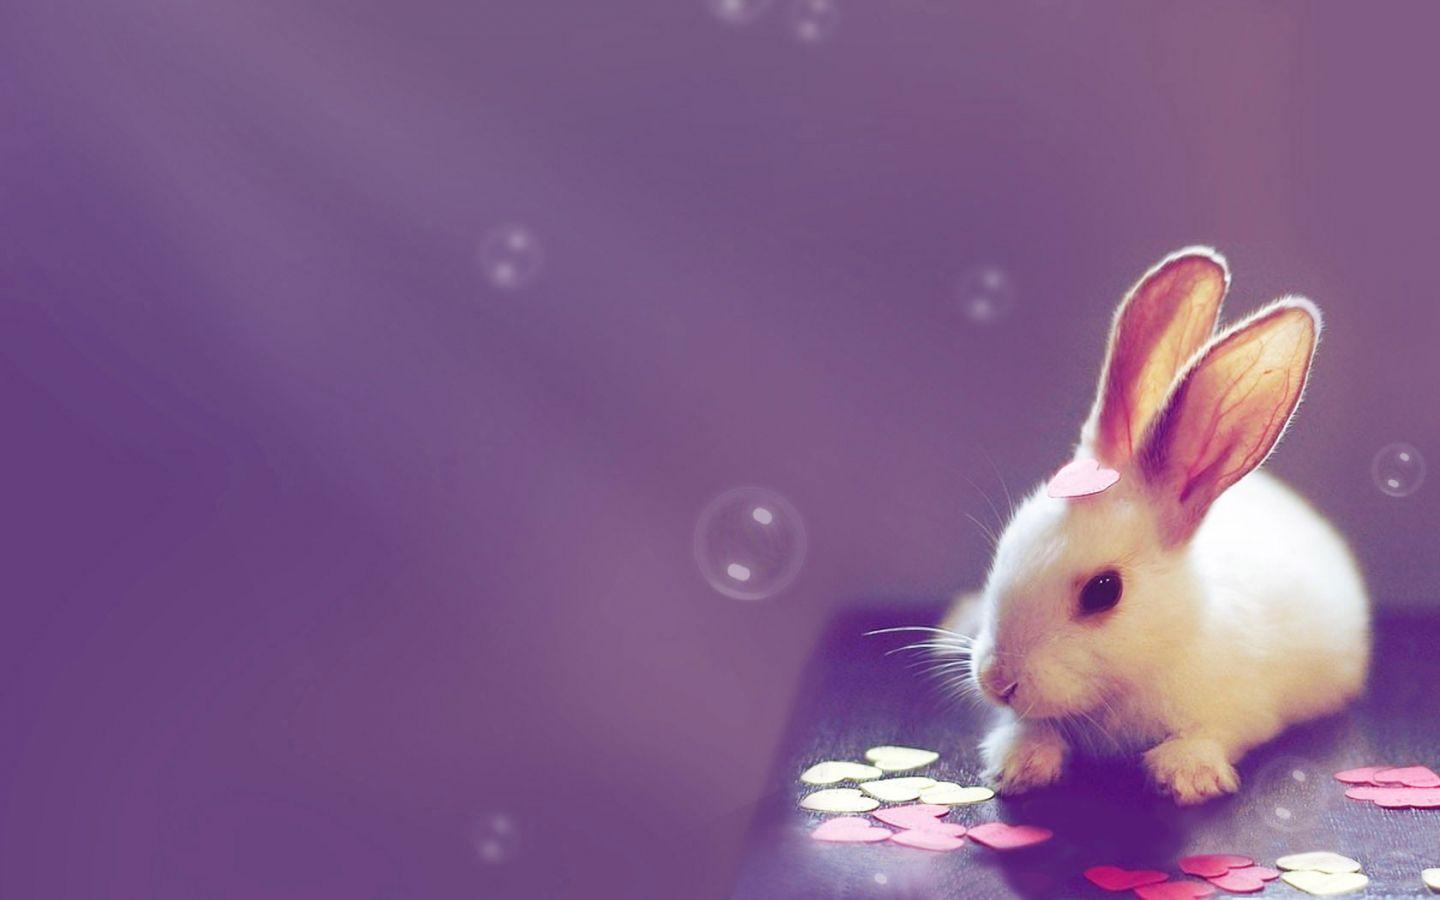 Cute Rabbit Anime Wallpapers Wallpaper Cave